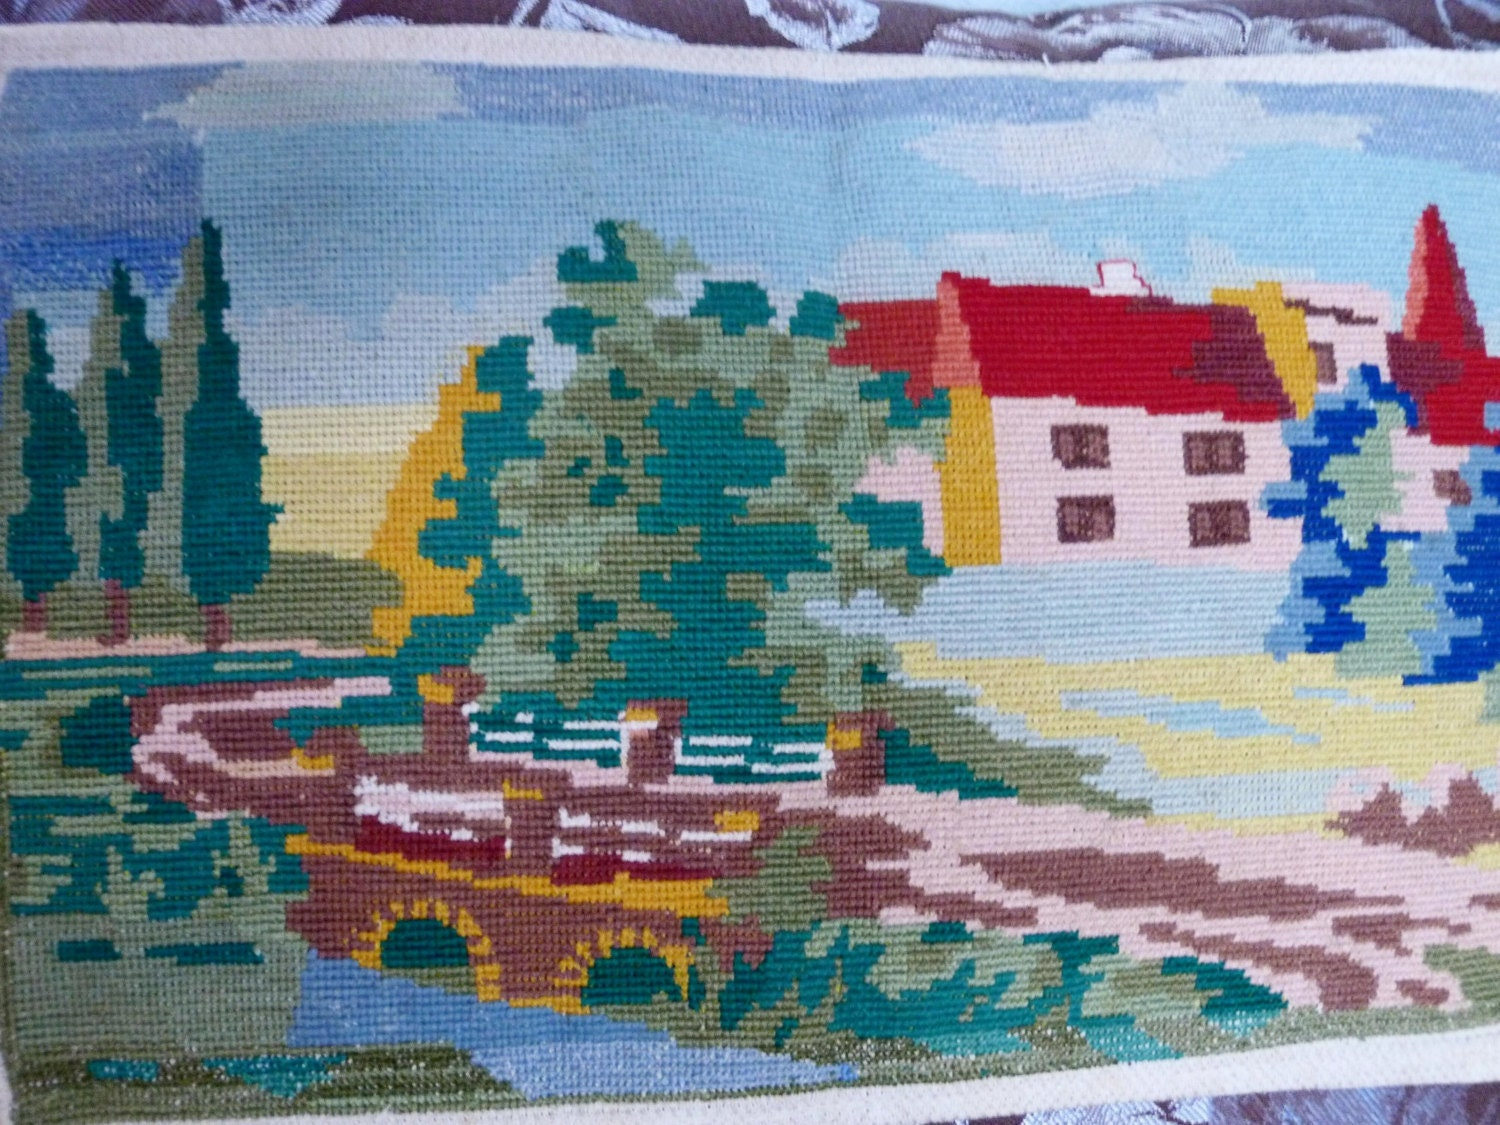 Vintage ukrainian embroidery embroidered picture little town